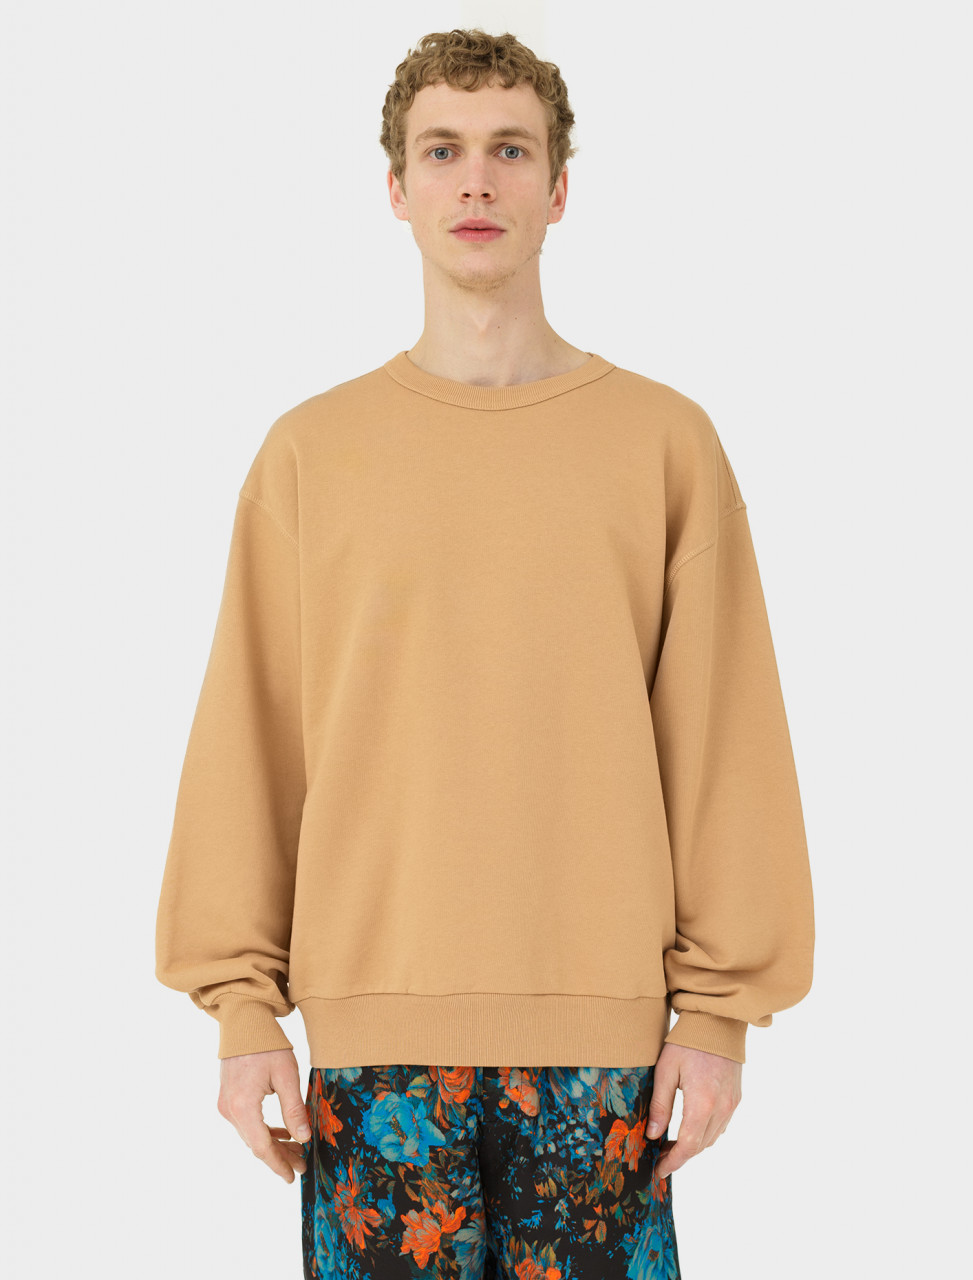 Hoxto Sweater